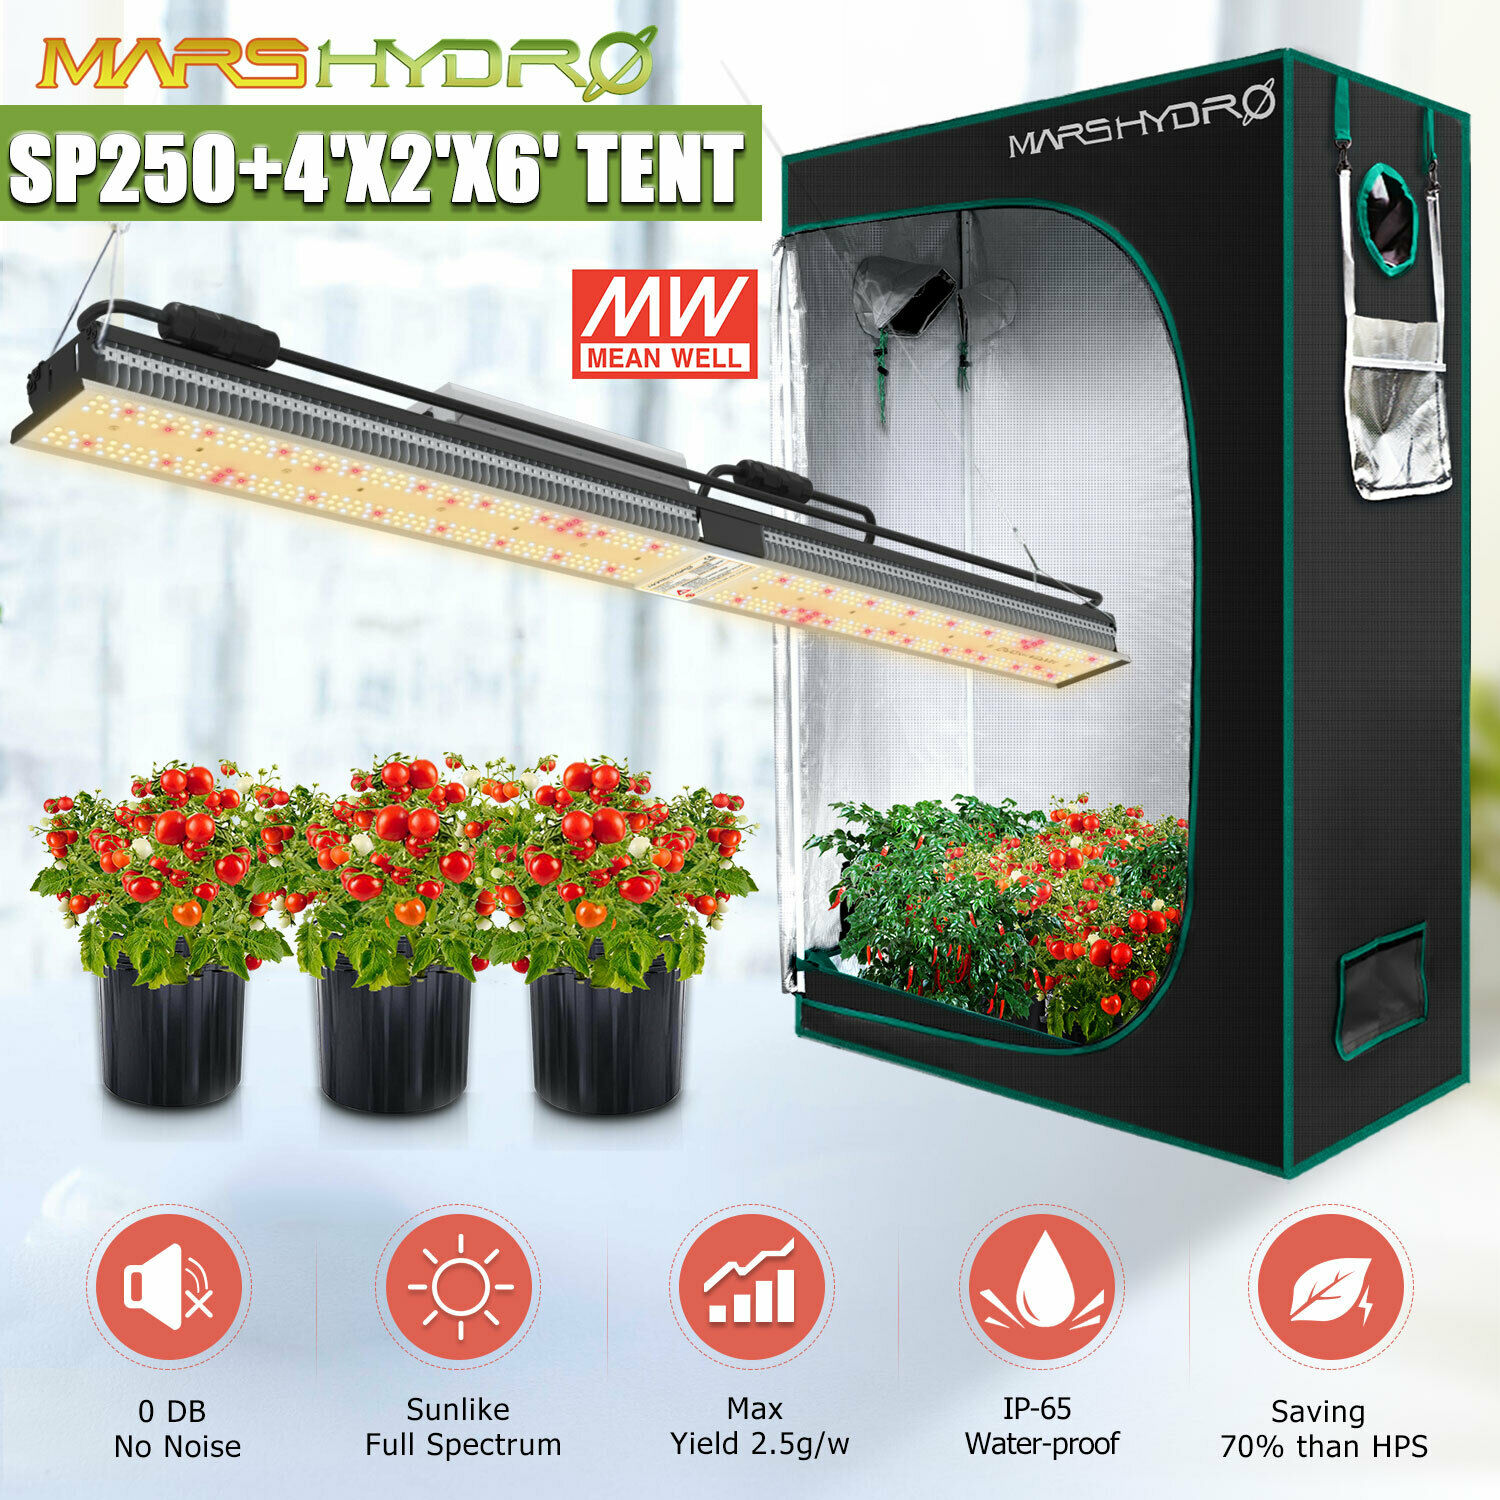 Mars Hydro SP 250 Led Grow Light +120x60x180cm Indoor-Tent Grow Box Full Spectrum Veg Flower